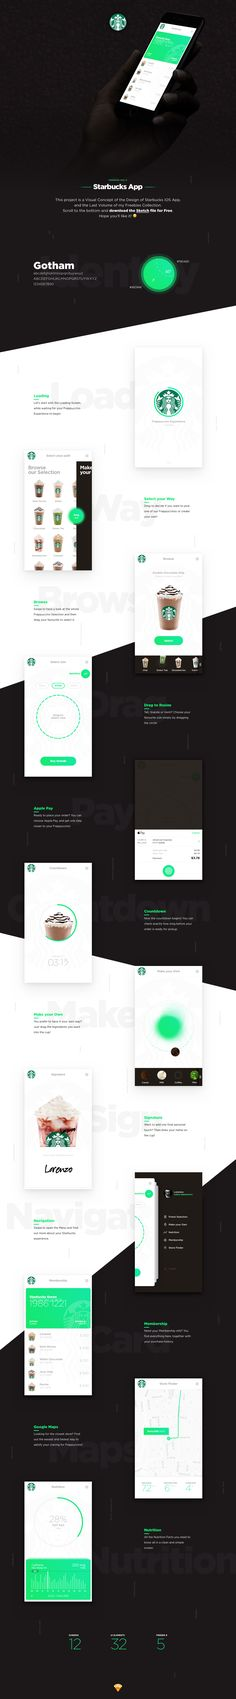 This project is a Visual Concept of the Design of Starbucks iOS App, and the Last Volume of my Freebies Collection. Scroll to the bottom and download the Sketch file for Free.Hope you'll like it!